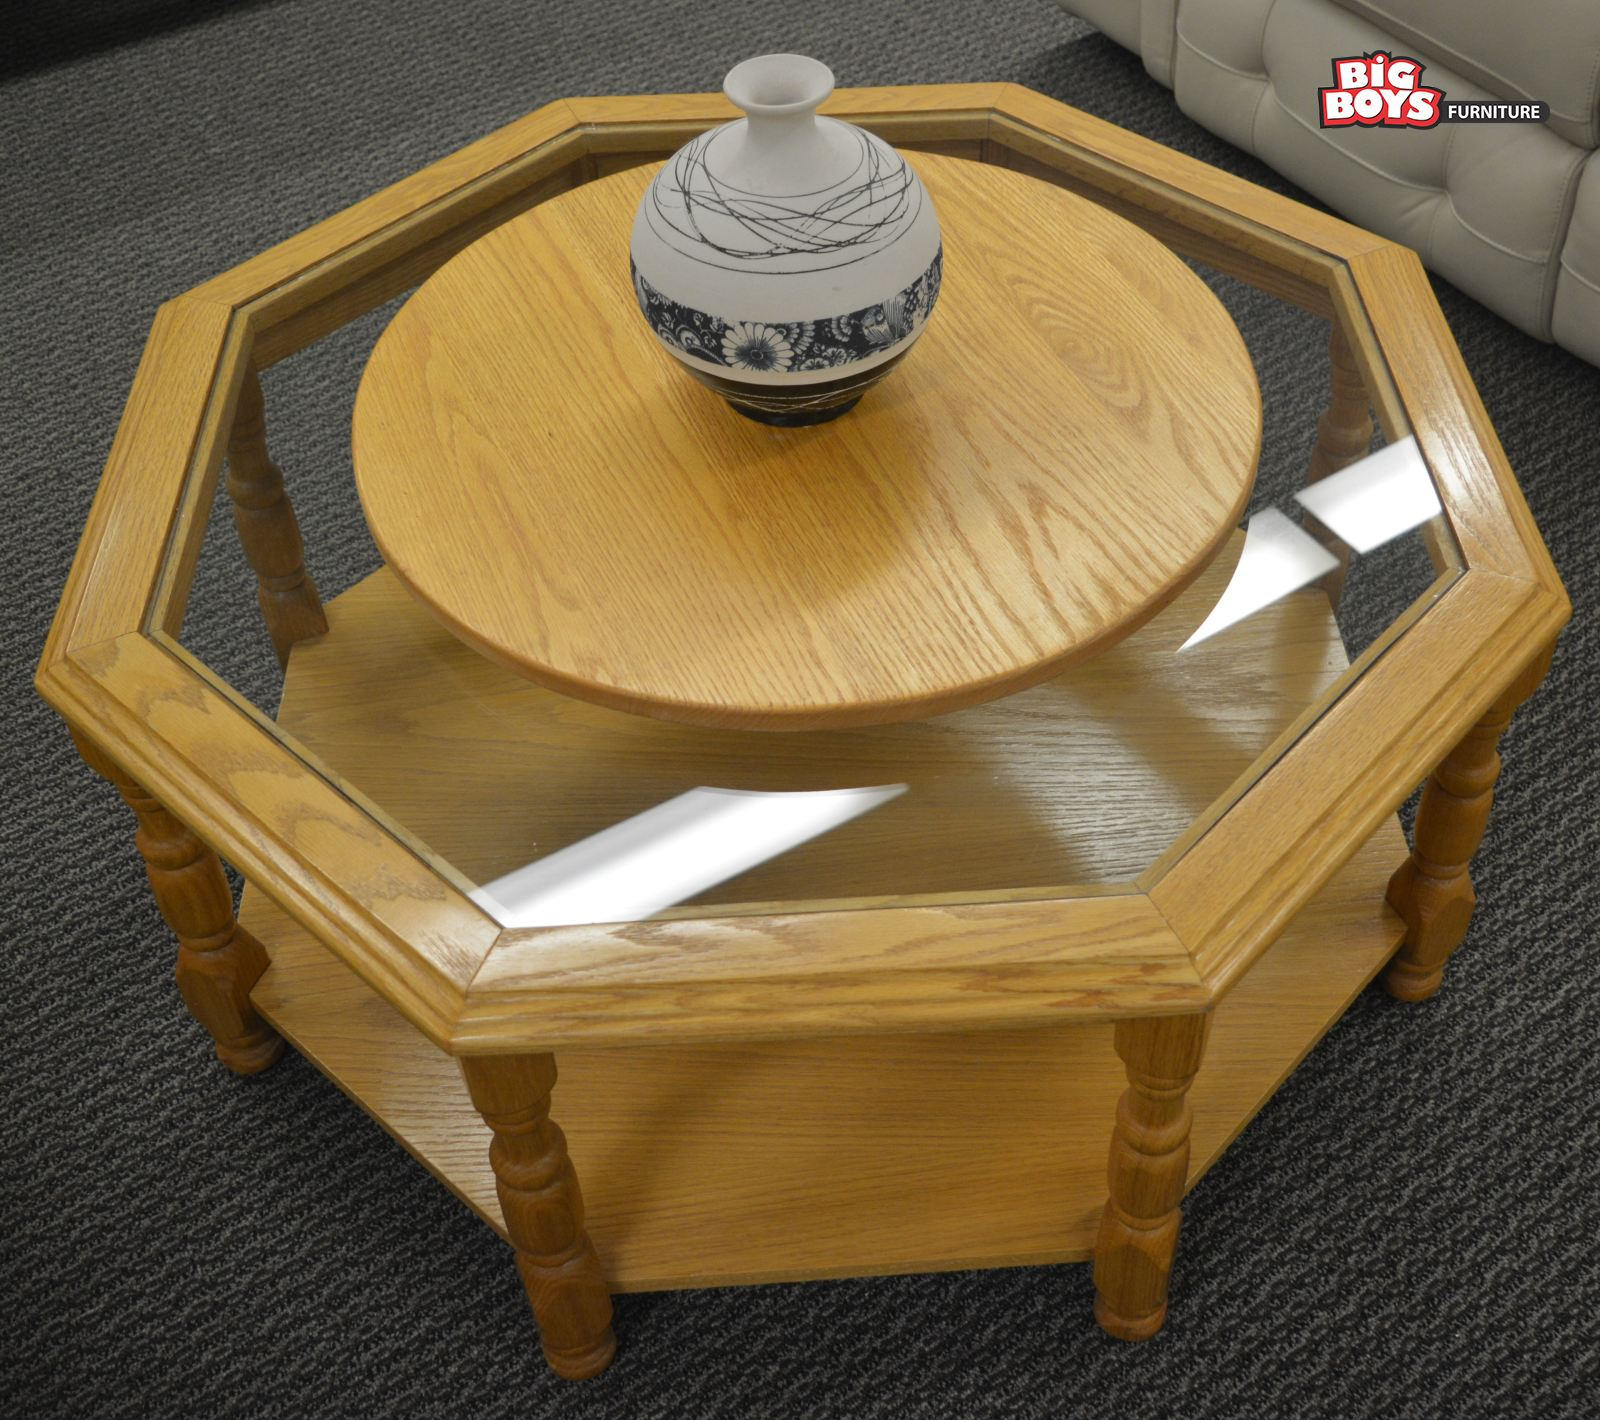 Different styles and shapes in Center table available at Big Boys Furniture Delta/Surrey